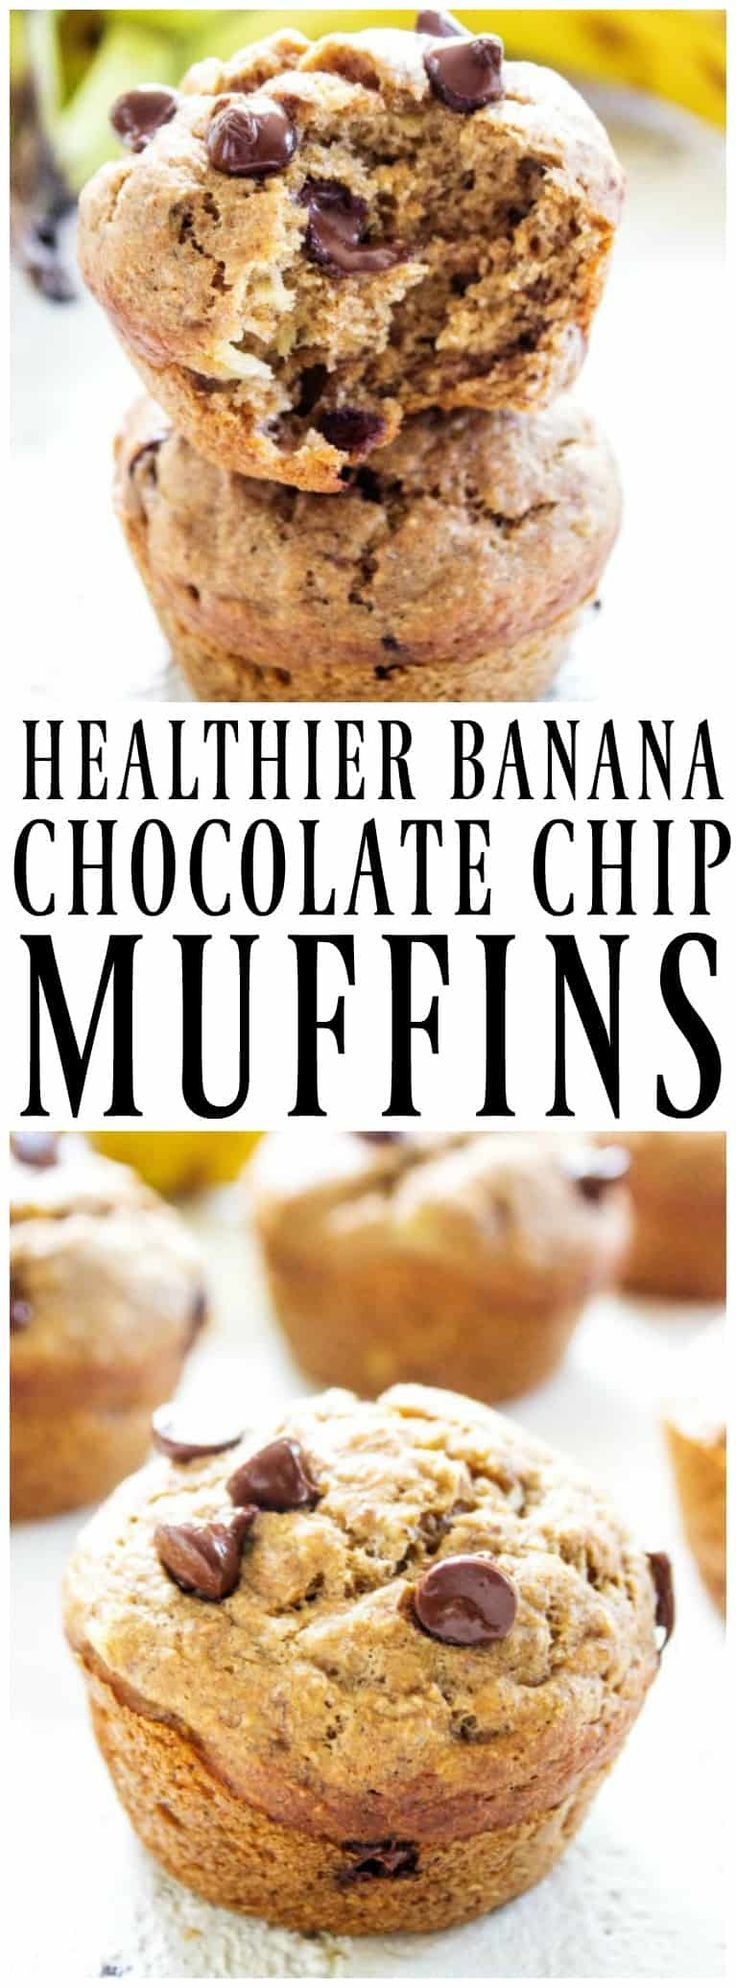 {HEALTHIER} BANANA CHOCOLATE CHIP MUFFINS - A Dash of Sanity